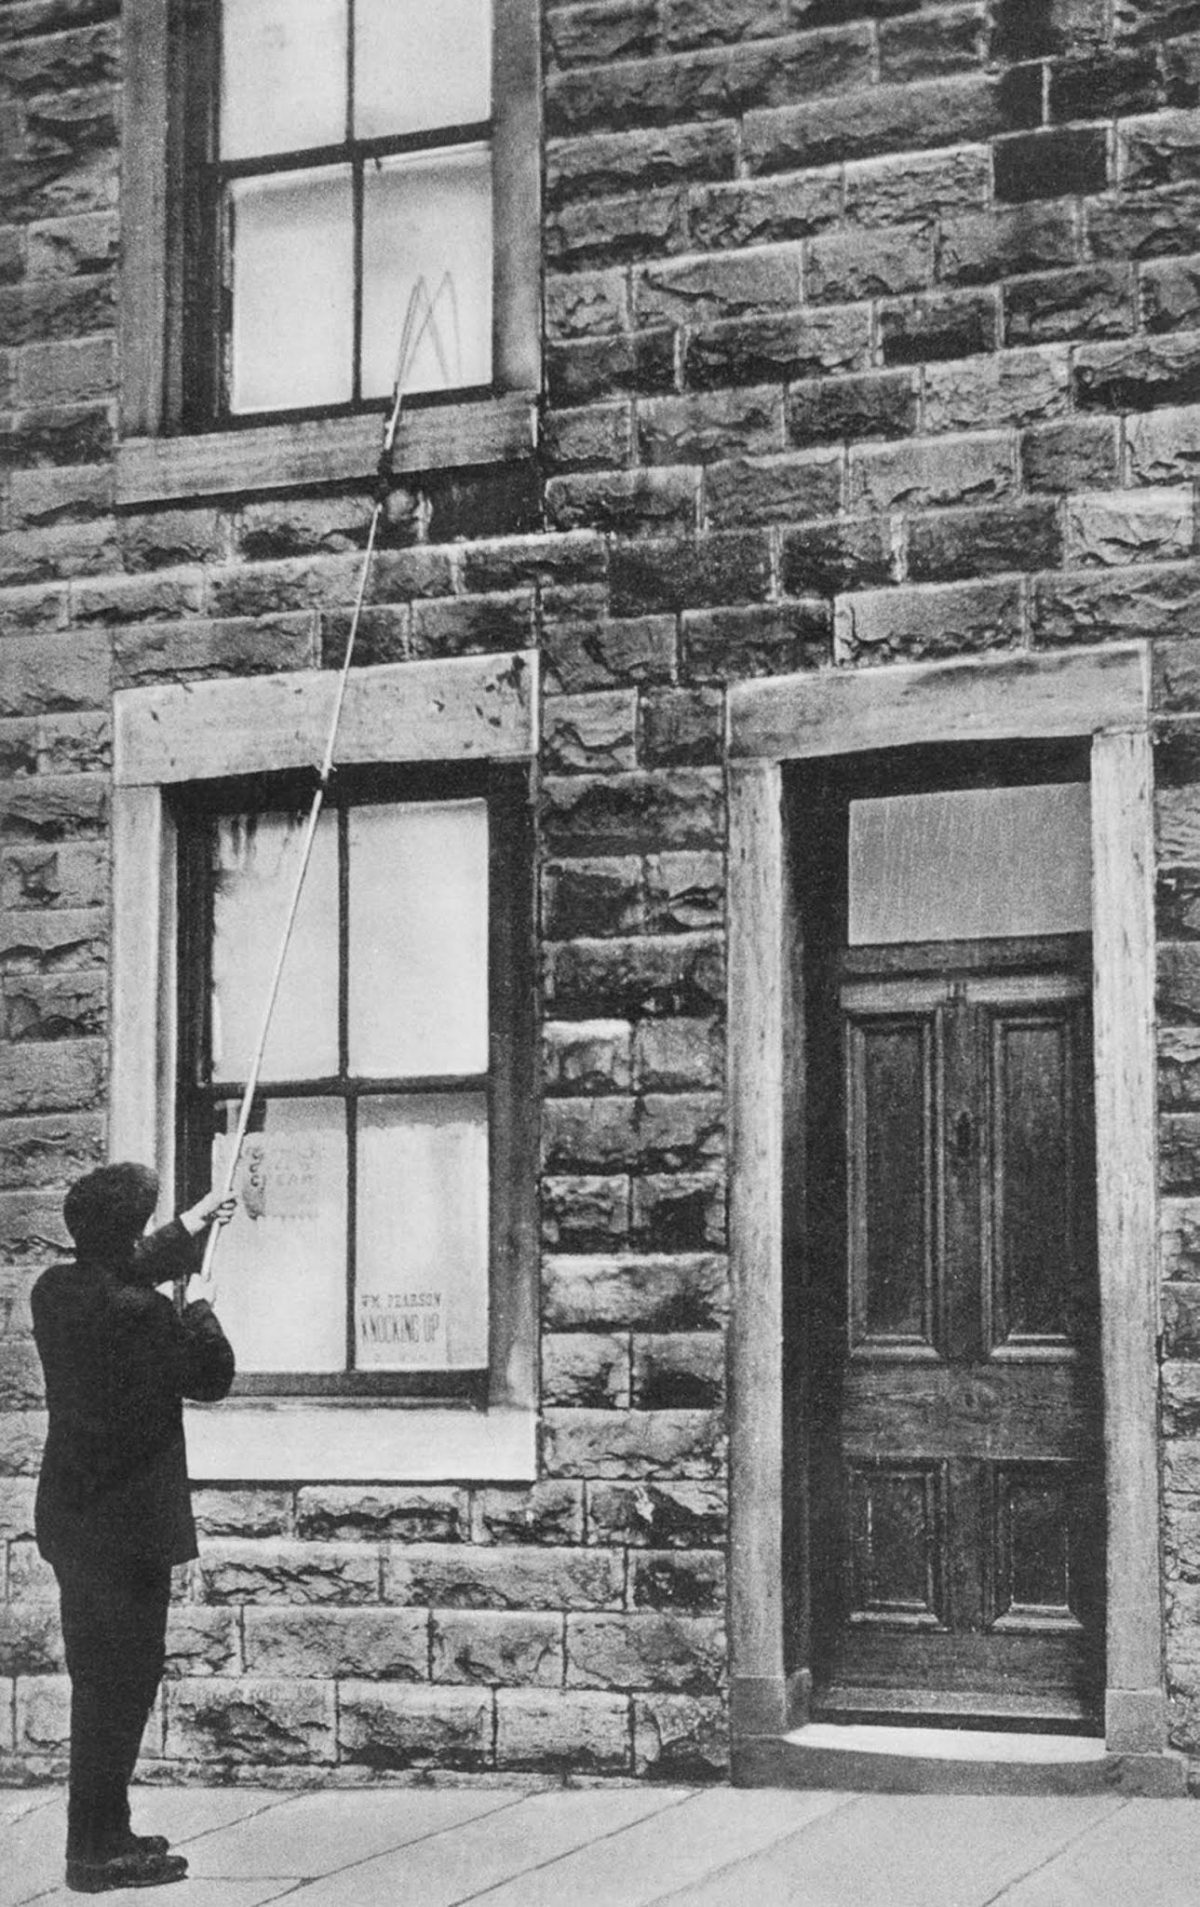 A man taps on a second-floor window with a long pole